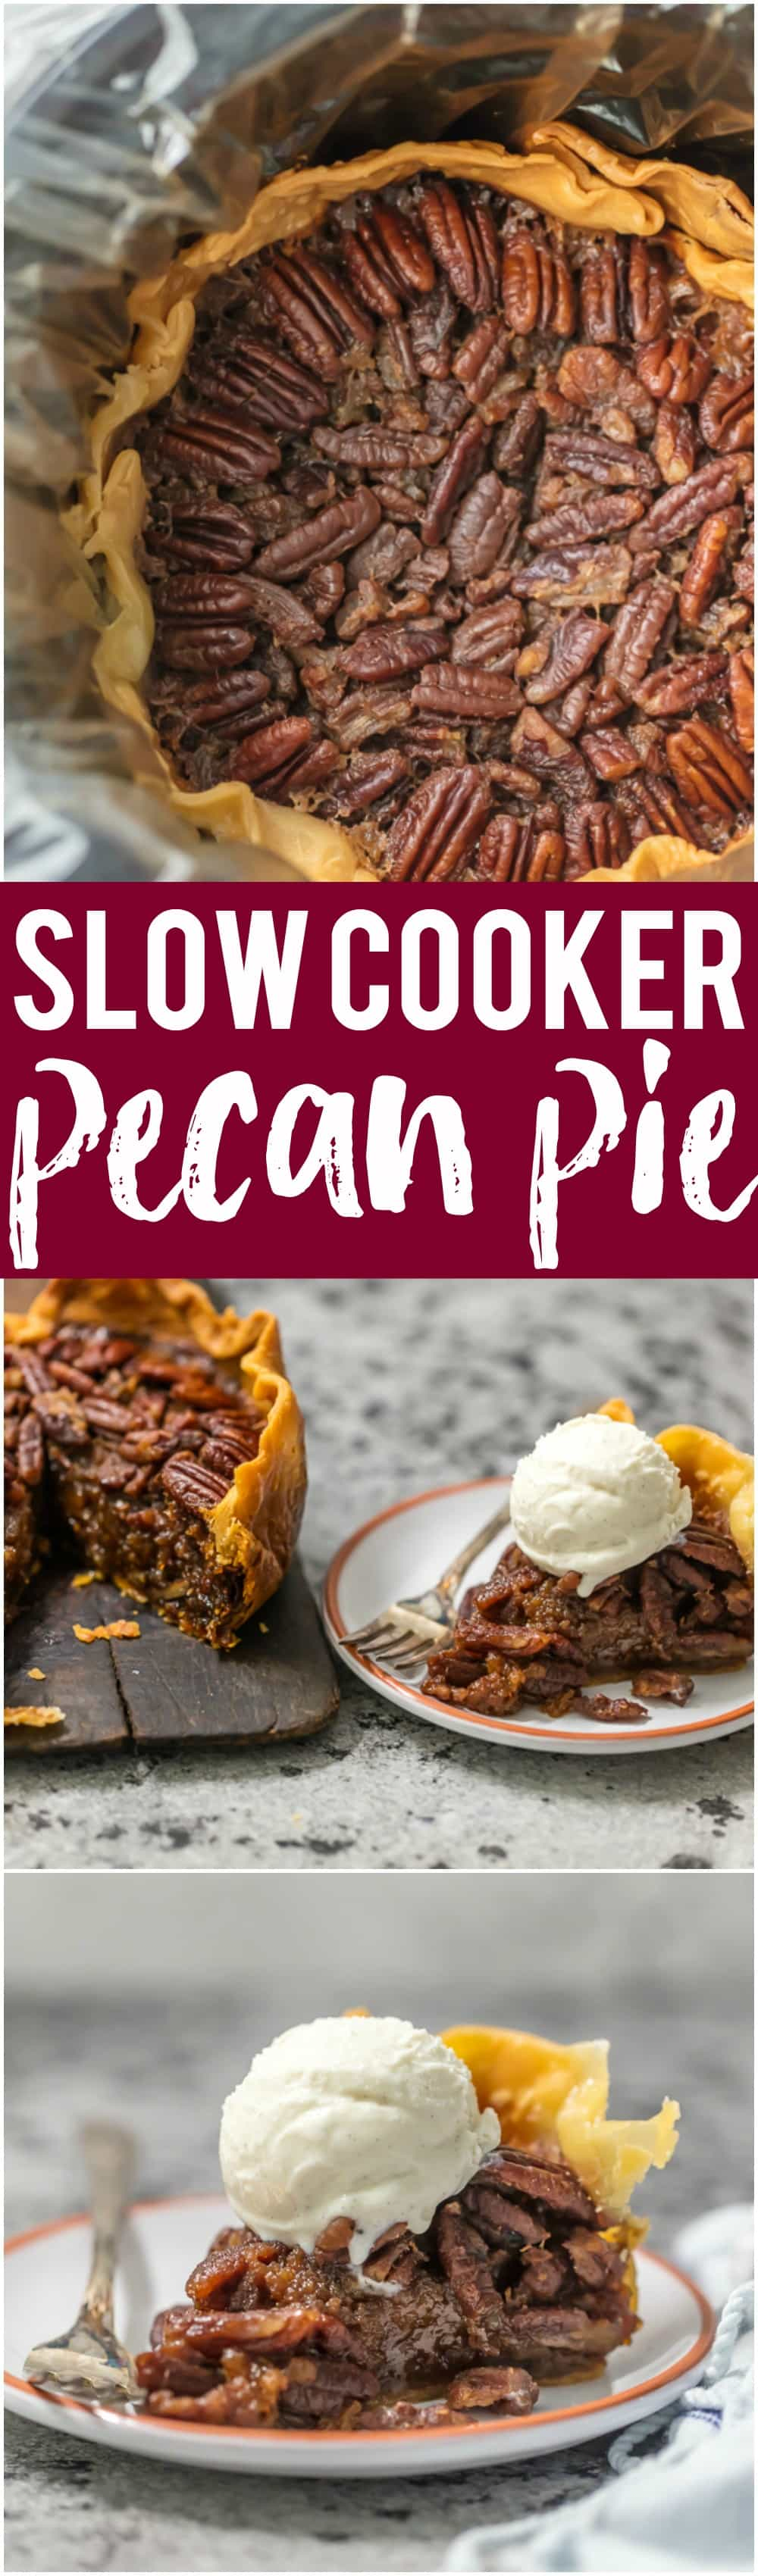 This SLOW COOKER PECAN PIE will knock your socks off and make for a delicious and easy Thanksgiving, Christmas, or Easter! We LOVE Pecan Pie and it's just as delicious made in a crockpot!